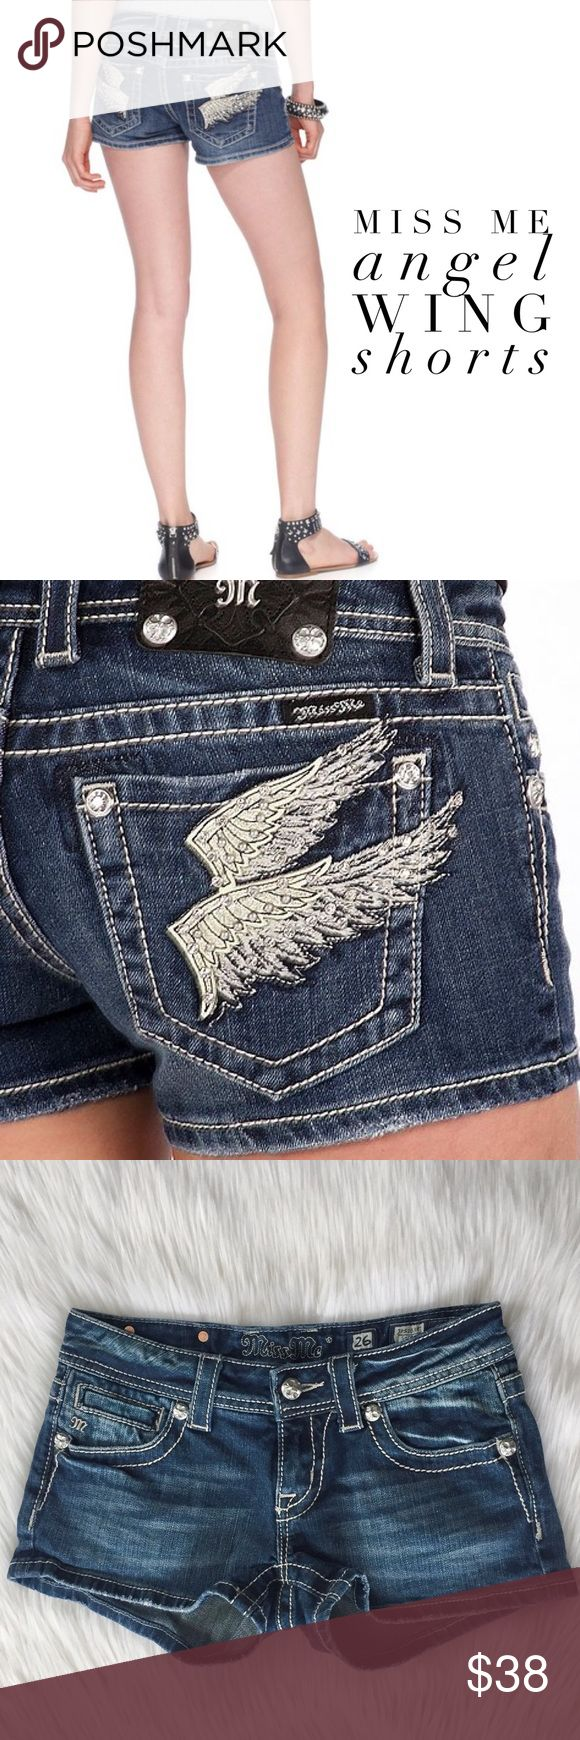 """Miss Me • Angel Wing Shorts Light whiskering and embroidered double wing and rhinestone embellished back pockets add eye-catching appeal to these mid/dark wash Miss Me jean shorts -- a summer staple!  Excellent Pre-Loved Condition (no flaws or signs of wear) Style :: JP5163H7 Color :: MK 62 Materials :: 98% Cotton, 2% Elastane   Measurements :: Flat Waist: 13.5"""" Inseam: 2.5"""" Rise: 7"""" Leg Opening: 10"""" Miss Me Shorts Jean Shorts"""